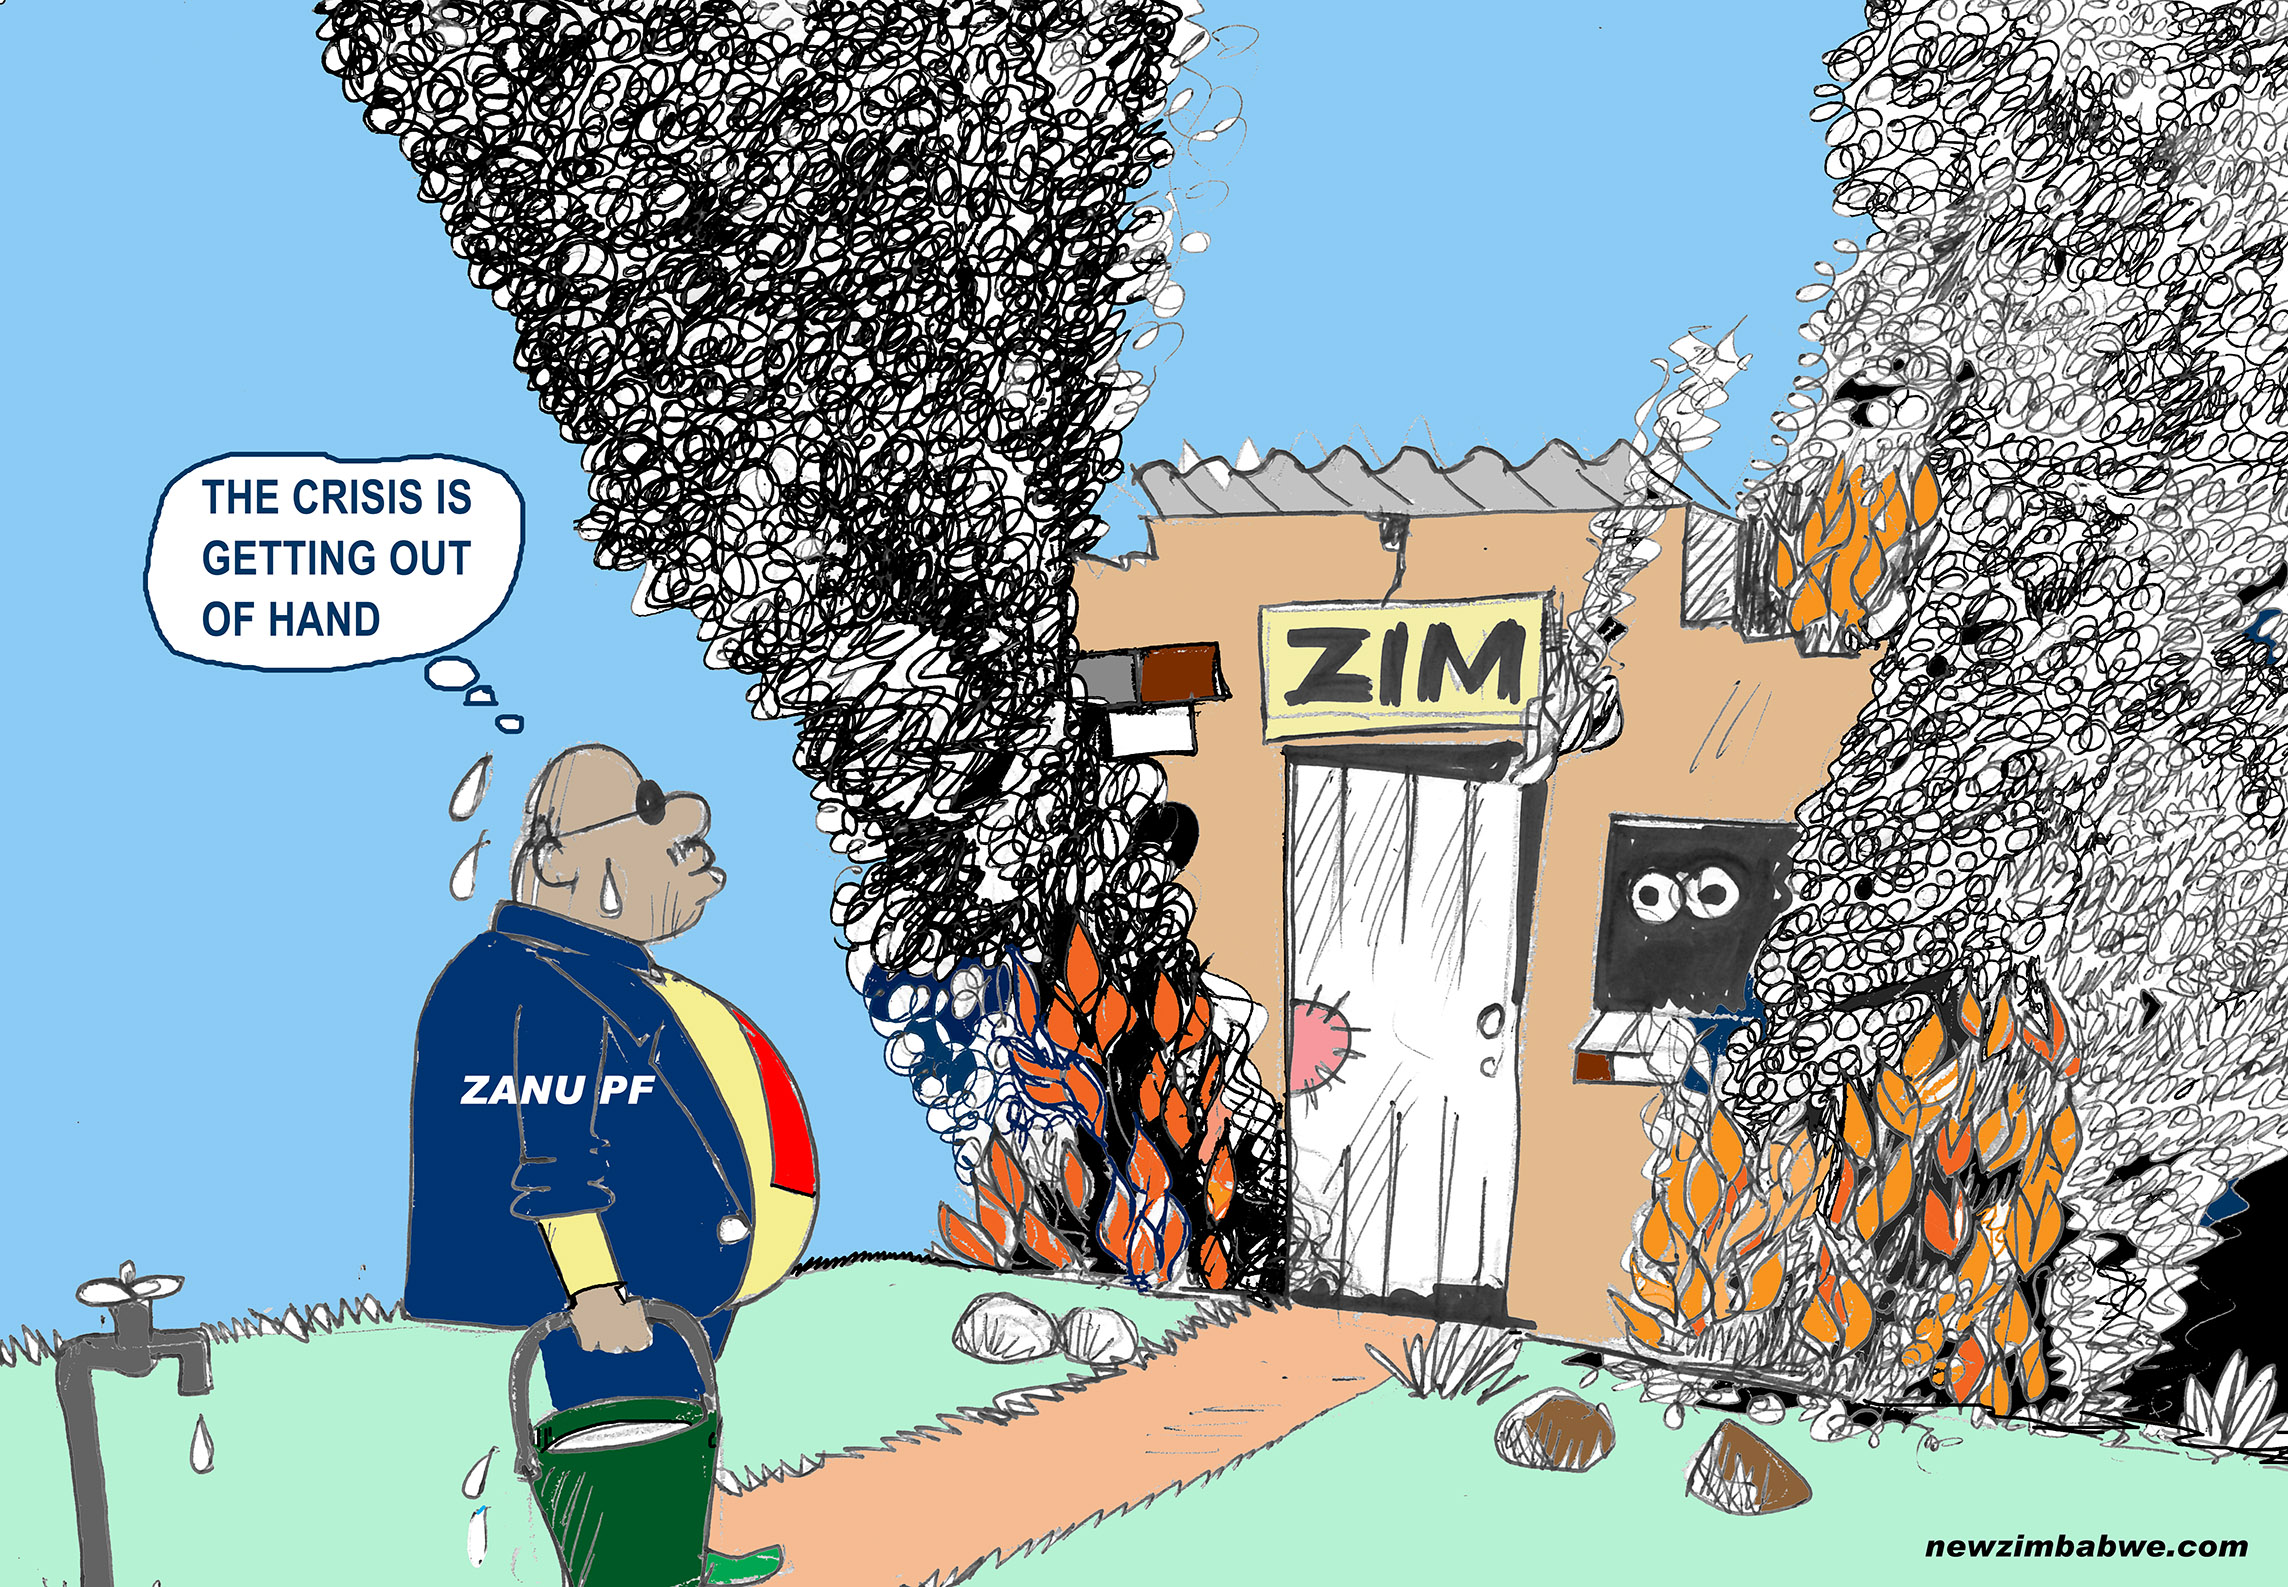 Zim crisis getting out of hand